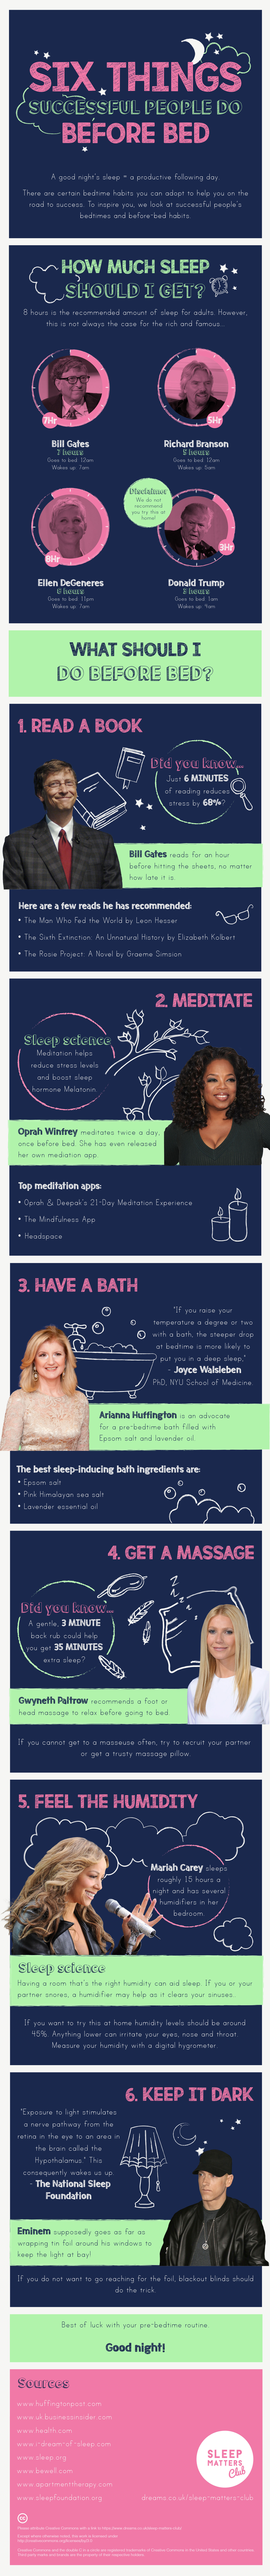 The Bedtime Habits of Successful People: 6 Ways to Sleep Soundly - Infographic